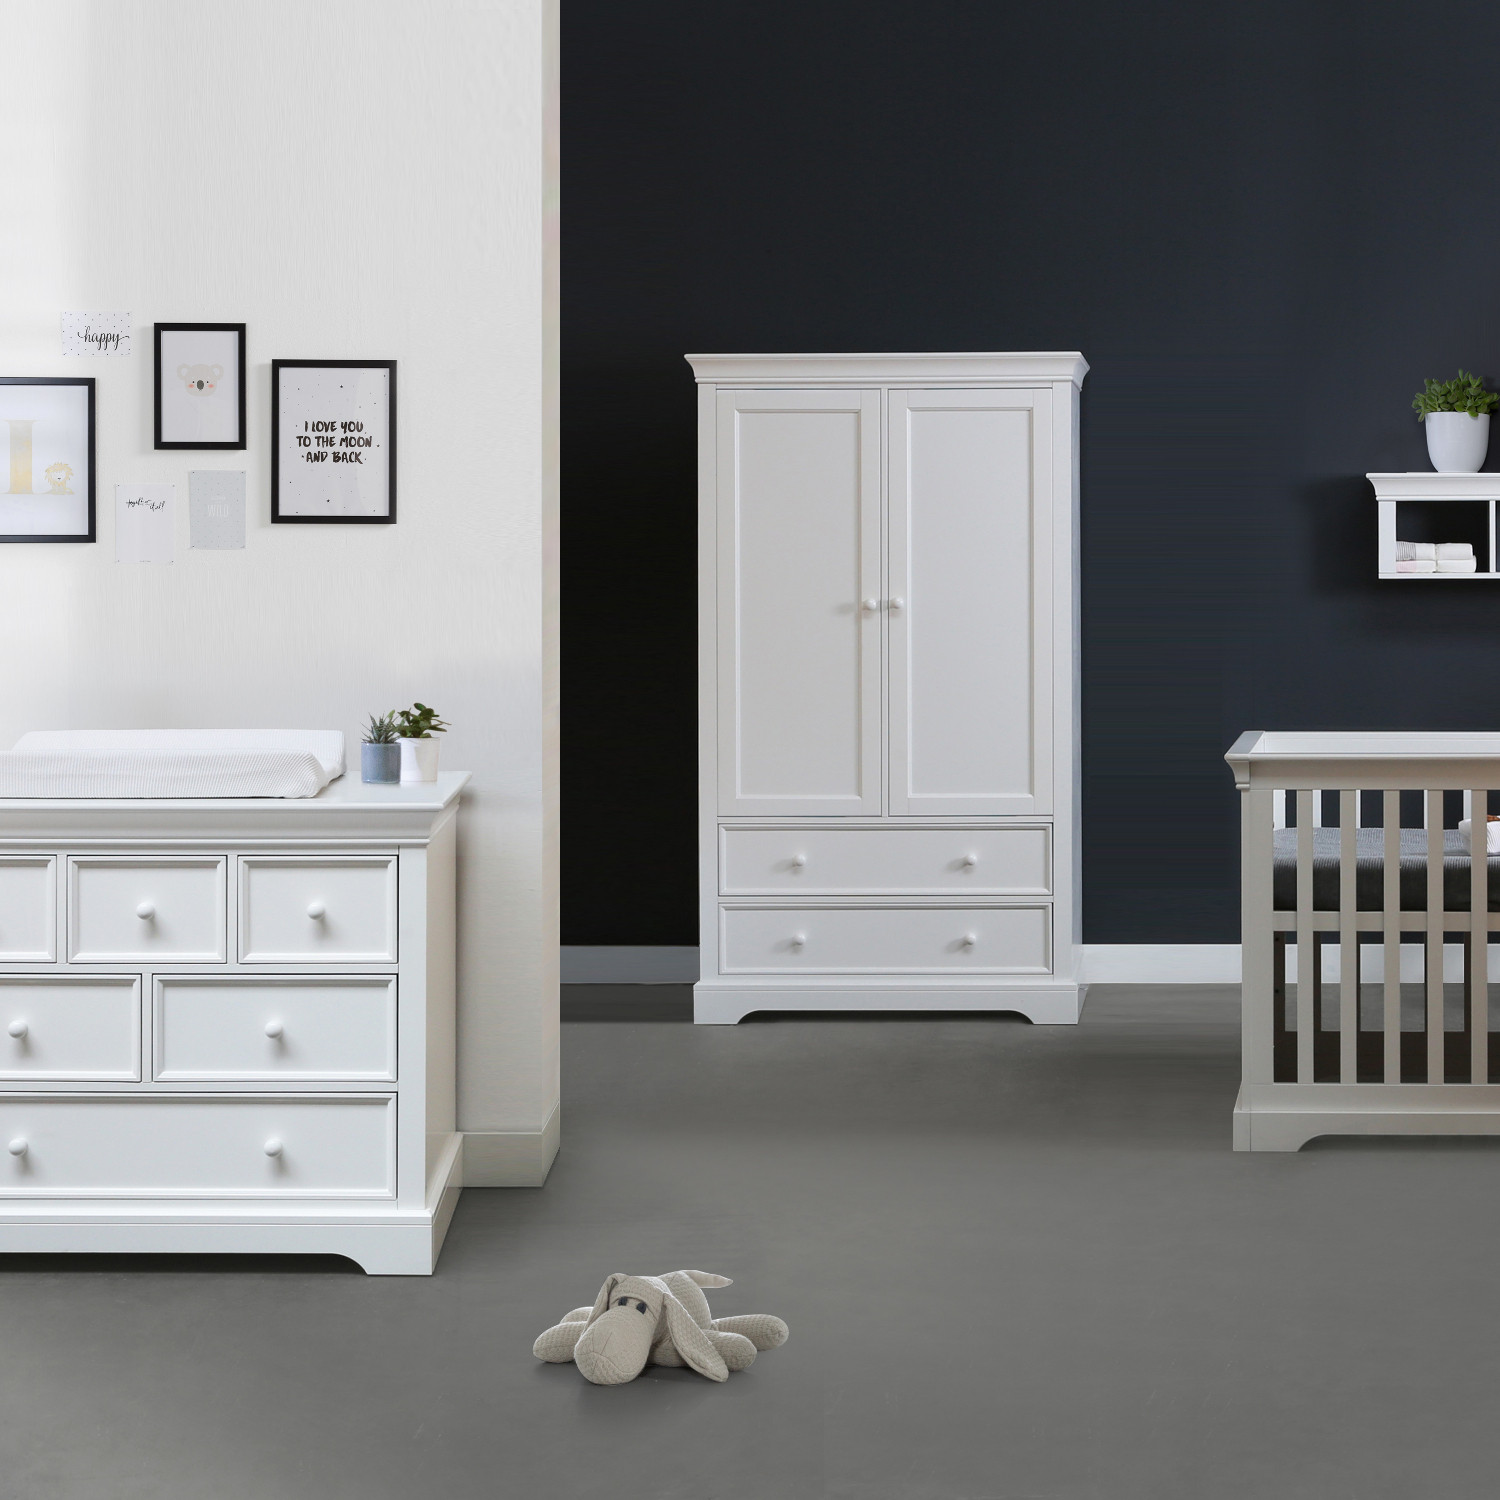 Commode Of Ladenkast.Kidsmill Chateau Babykamer Wit Bed 60 X 120 Cm Commode Kast 2